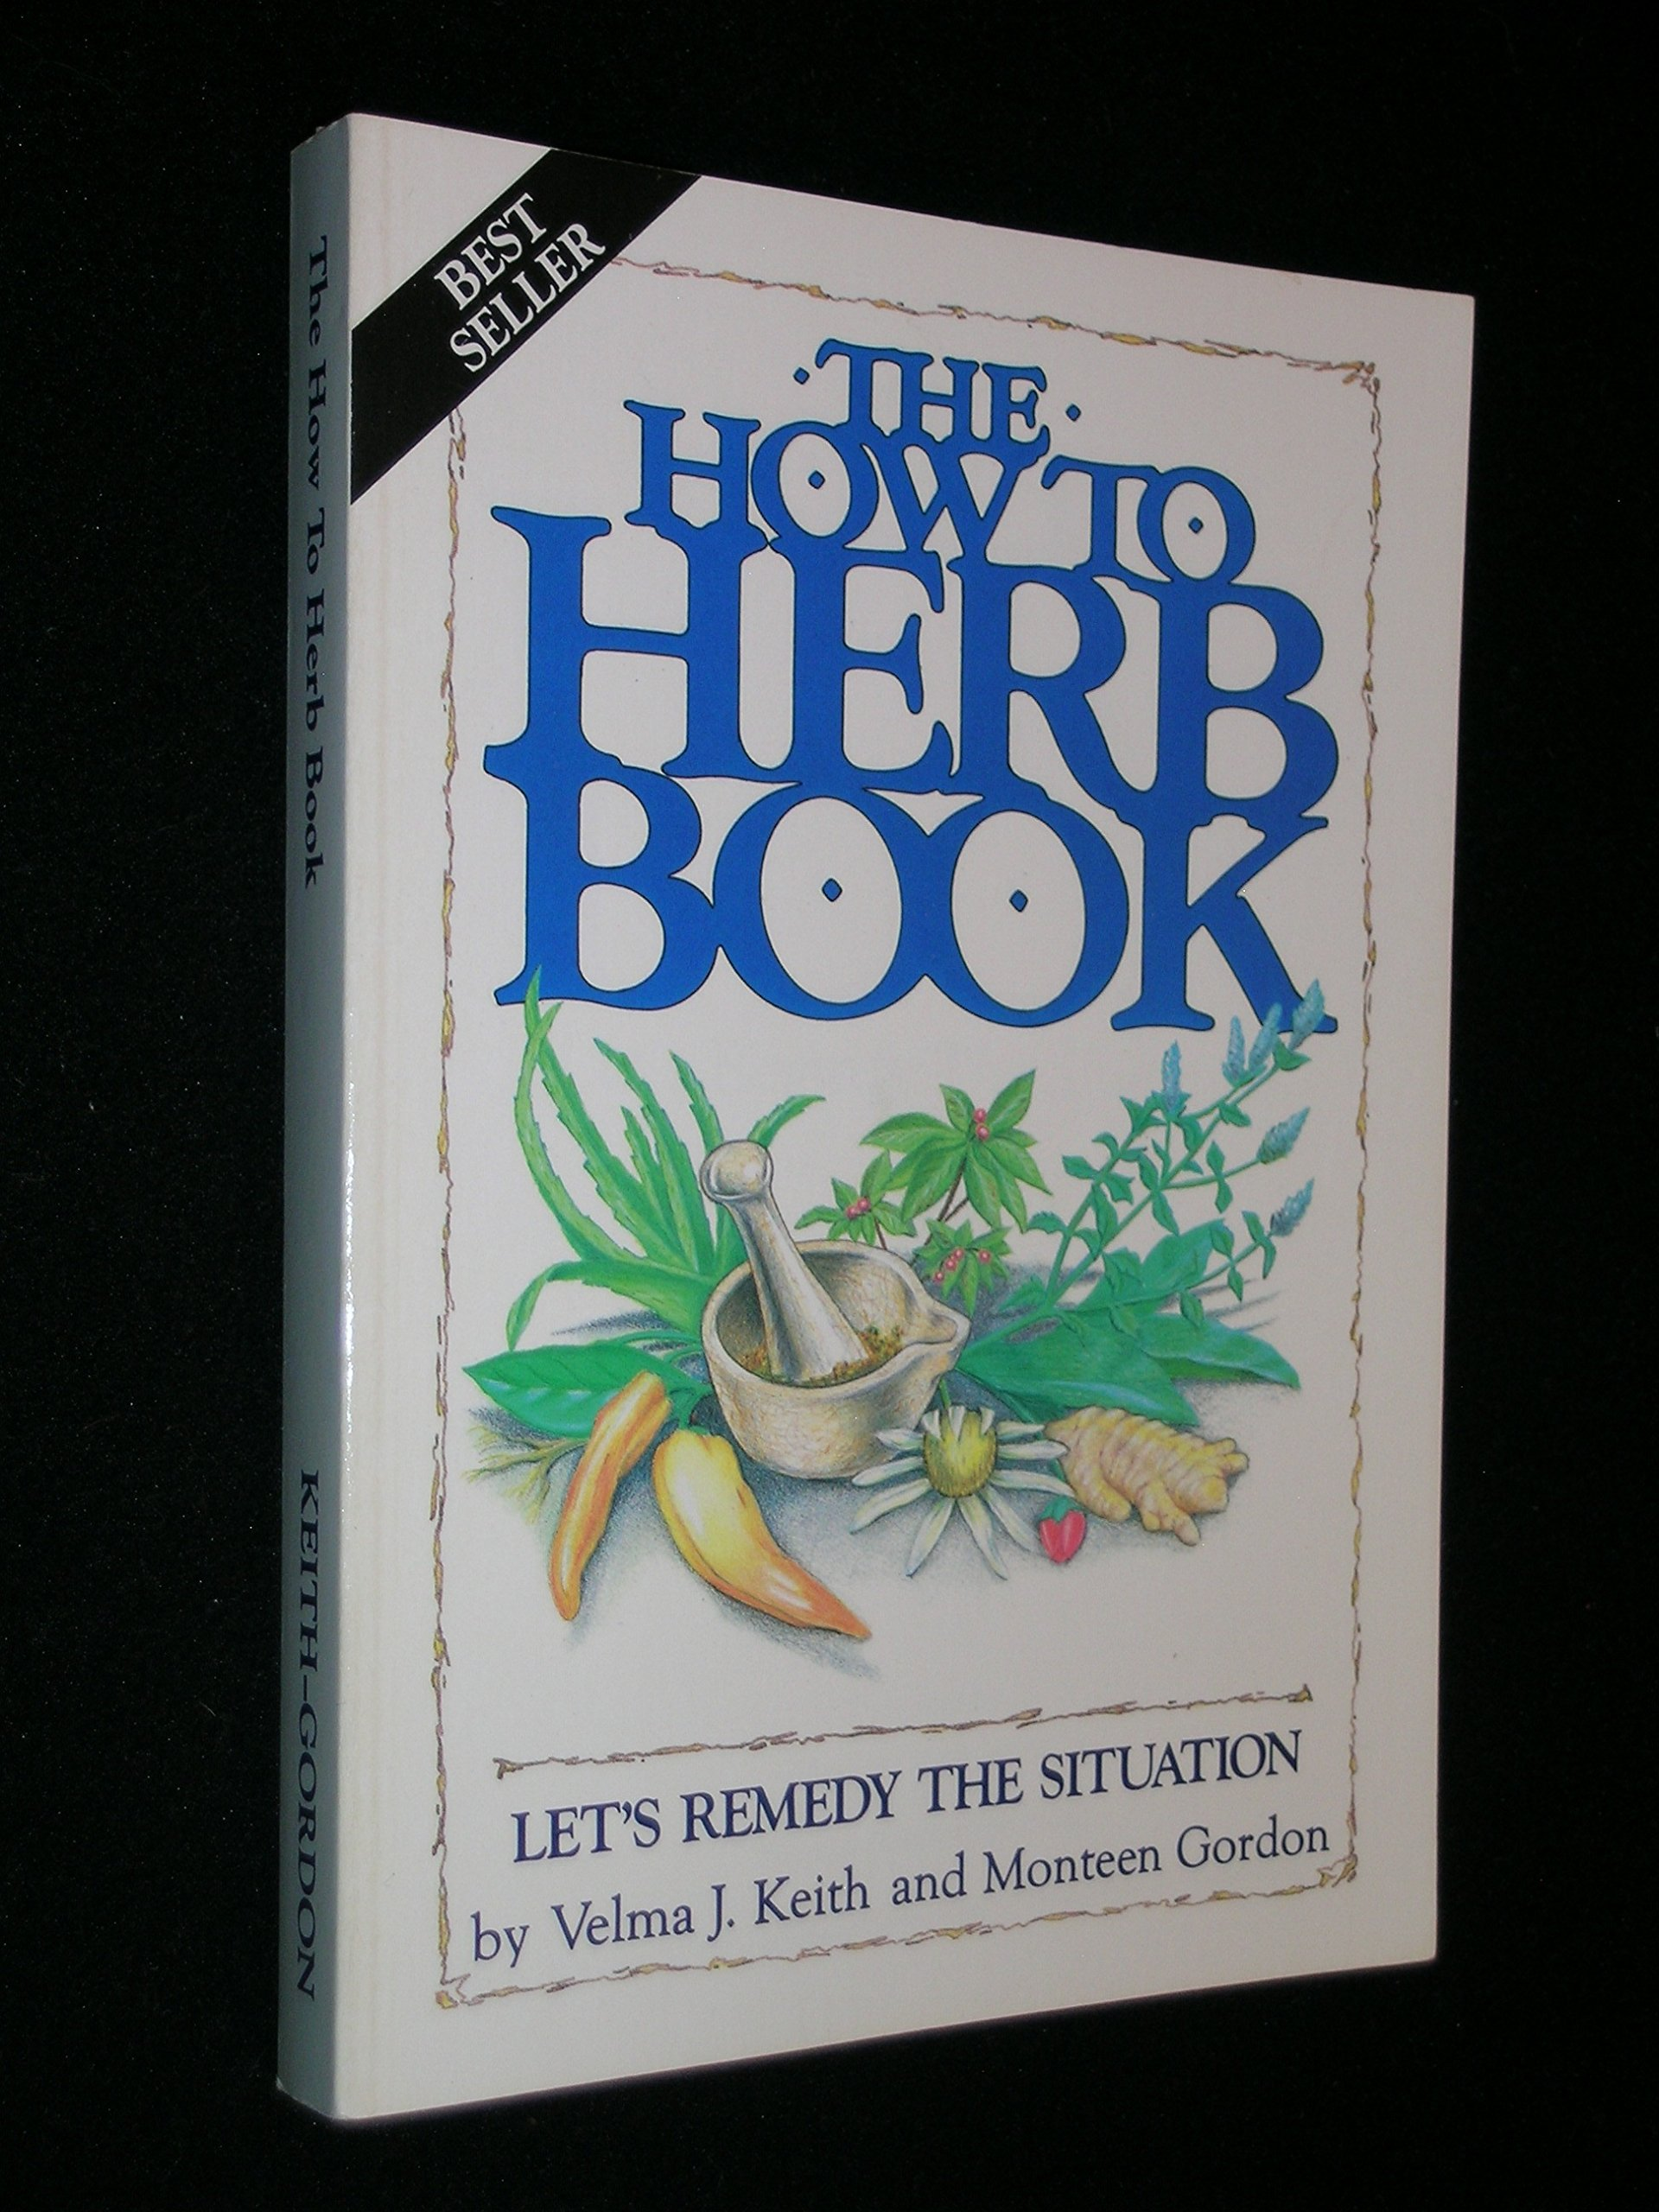 The How to Herb Book: Let's Remedy the Situation: Velma J